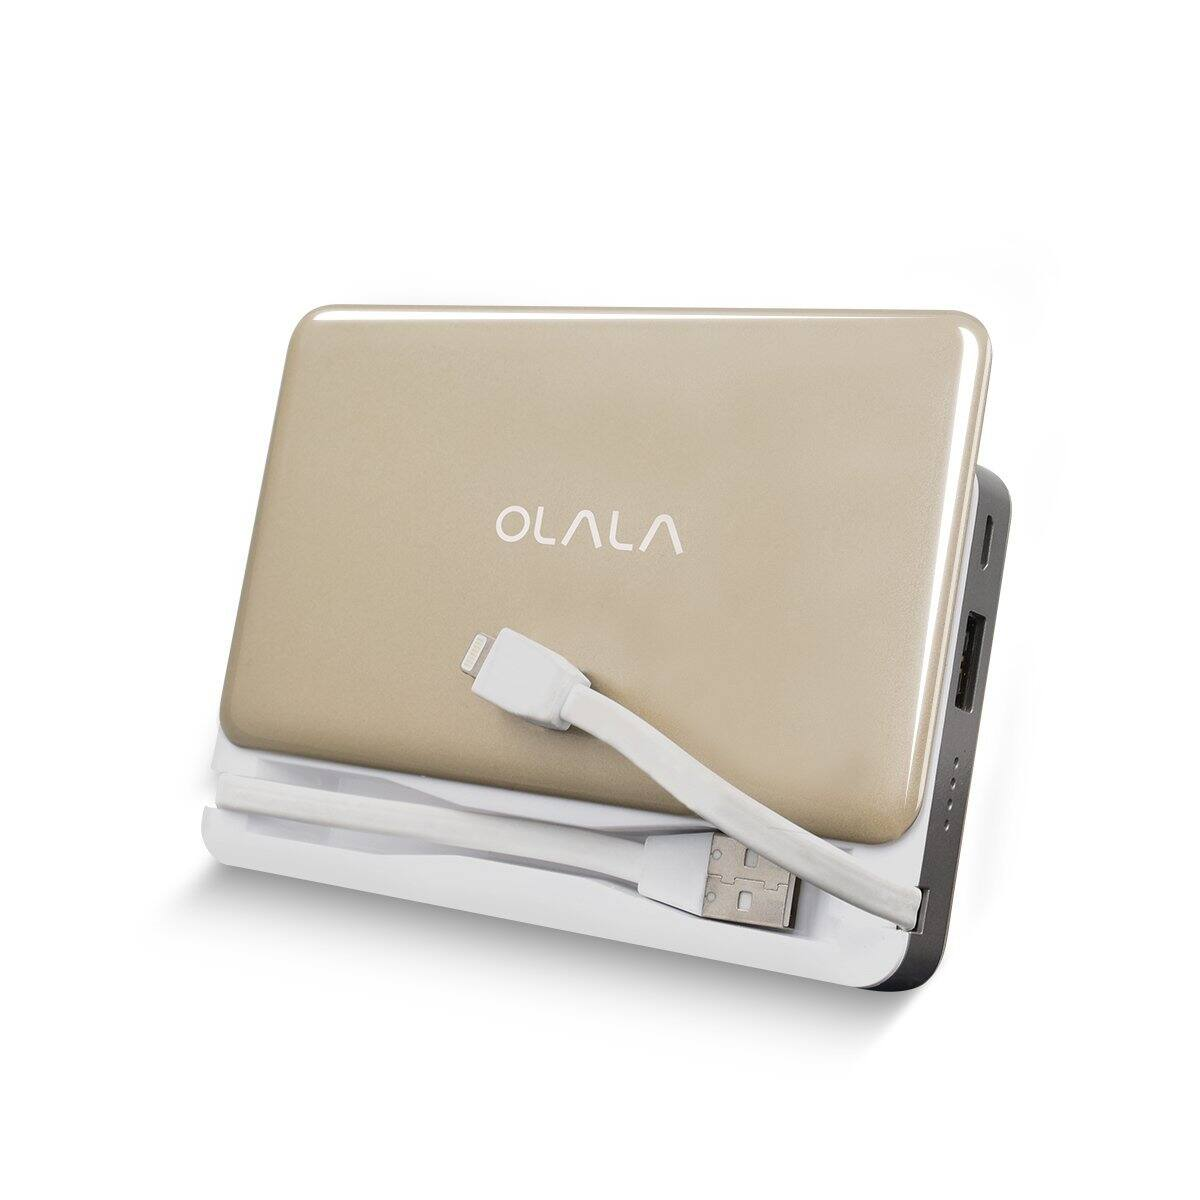 7500mAh Slide Power Bank with built in Lightning + USB Cables $24.81